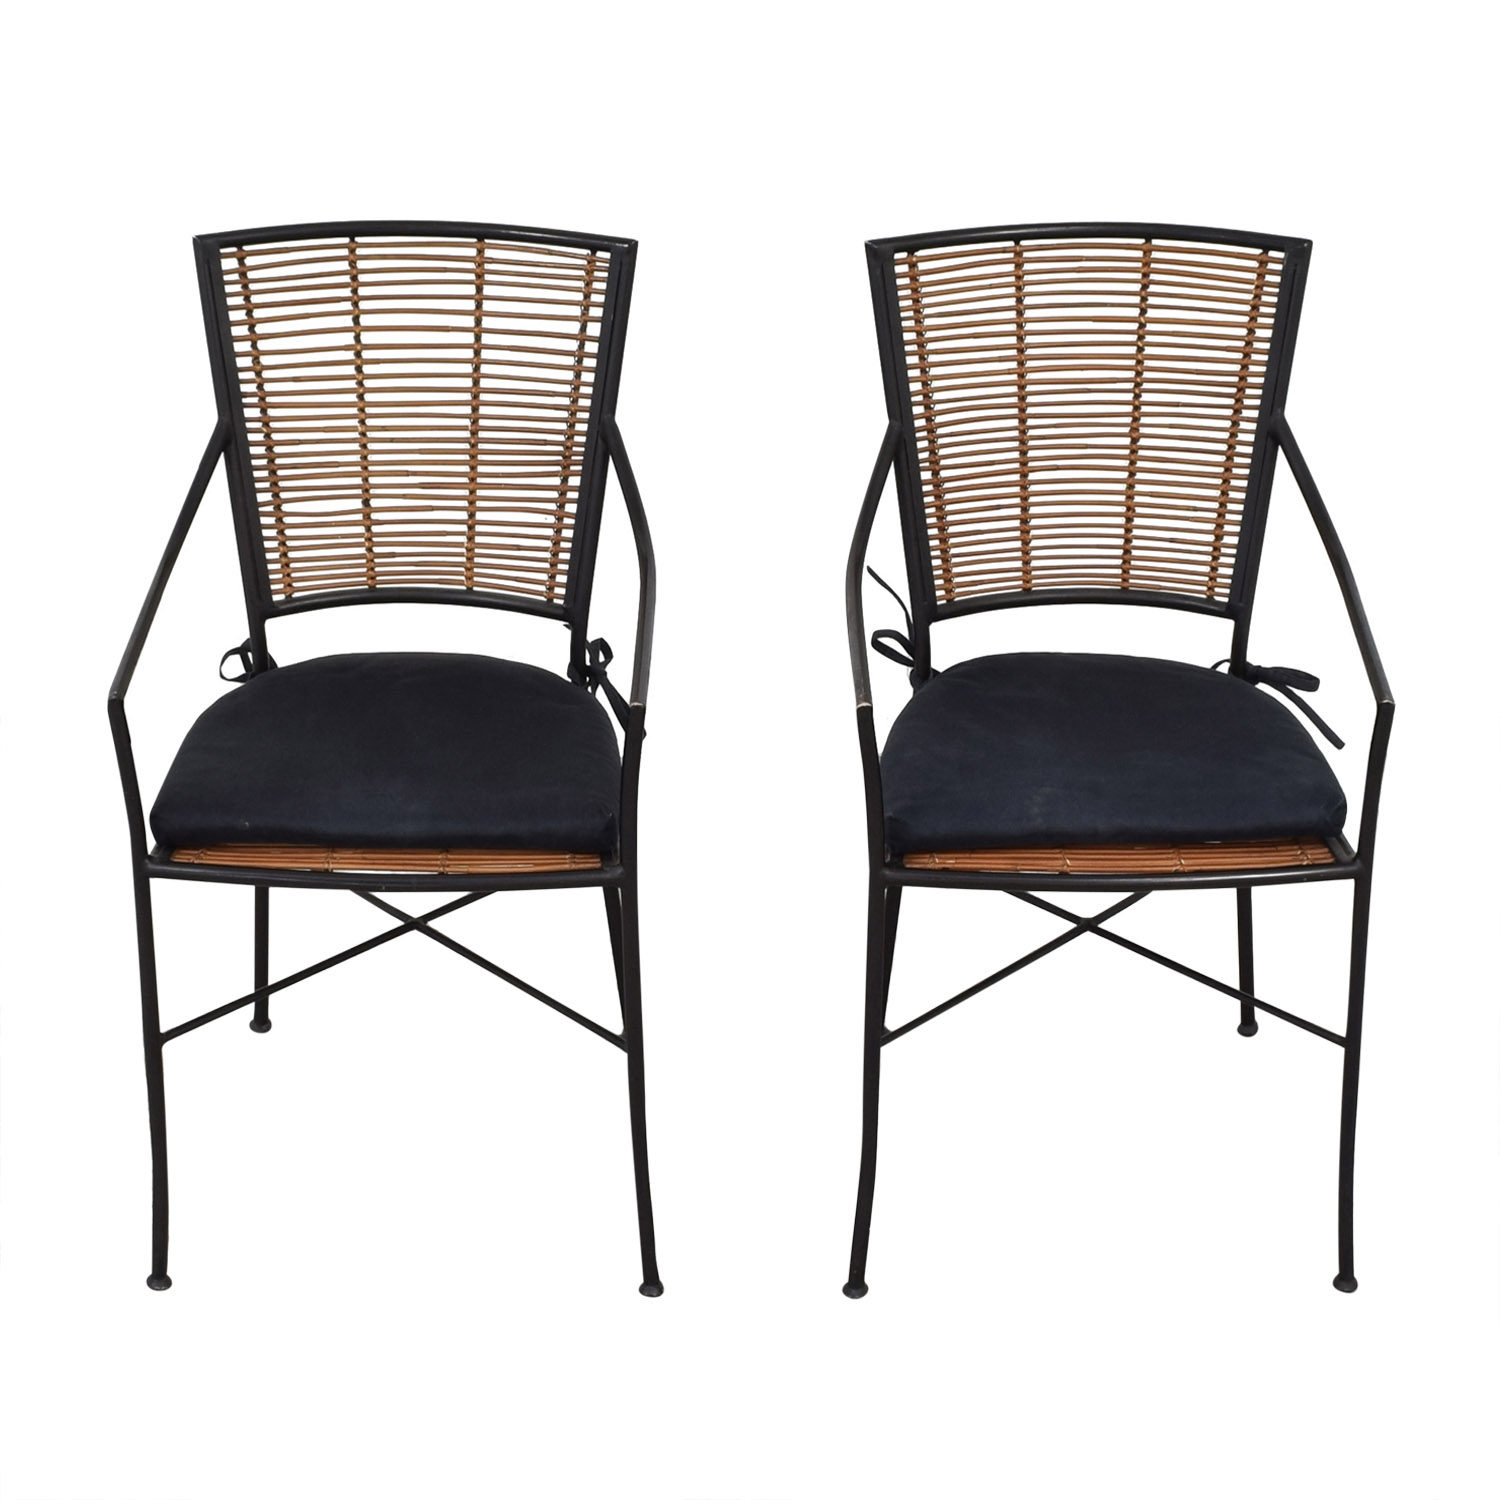 Crate & Barrel Crate & Barrel Dining Chairs brown & black